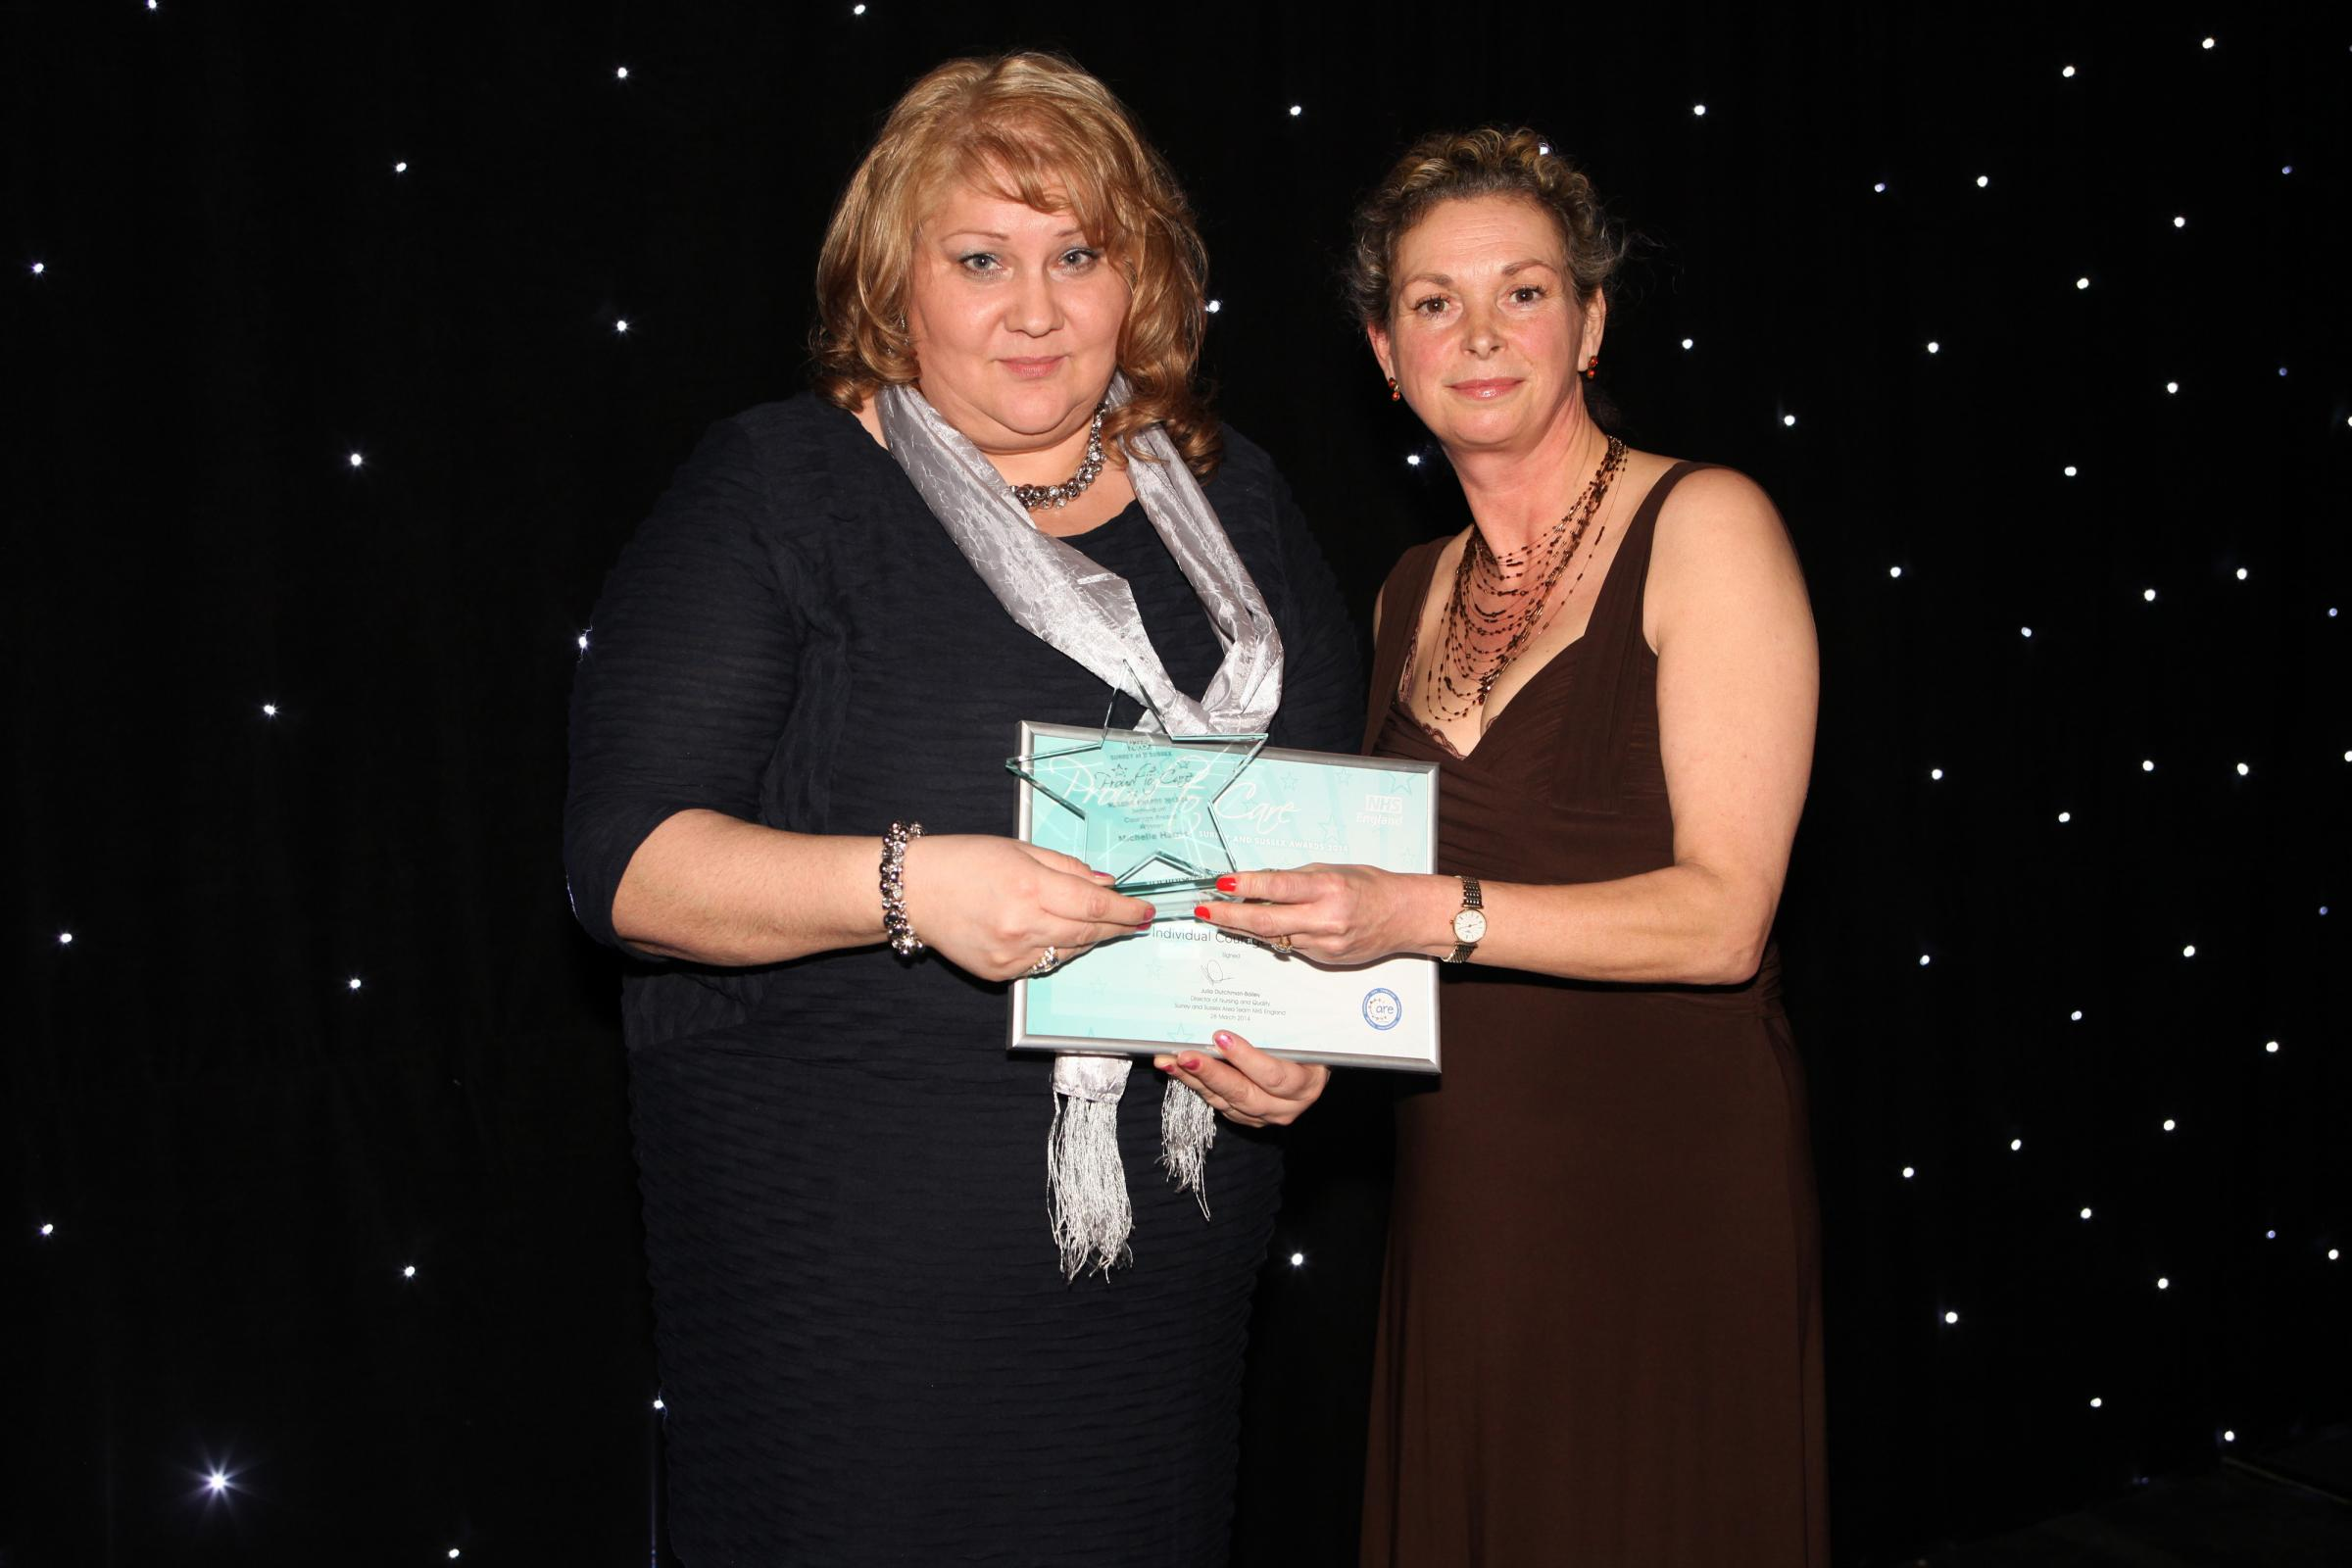 Ward sister Michelle Harris, who works at St Richard's Hospital in Chichester, collecting her award